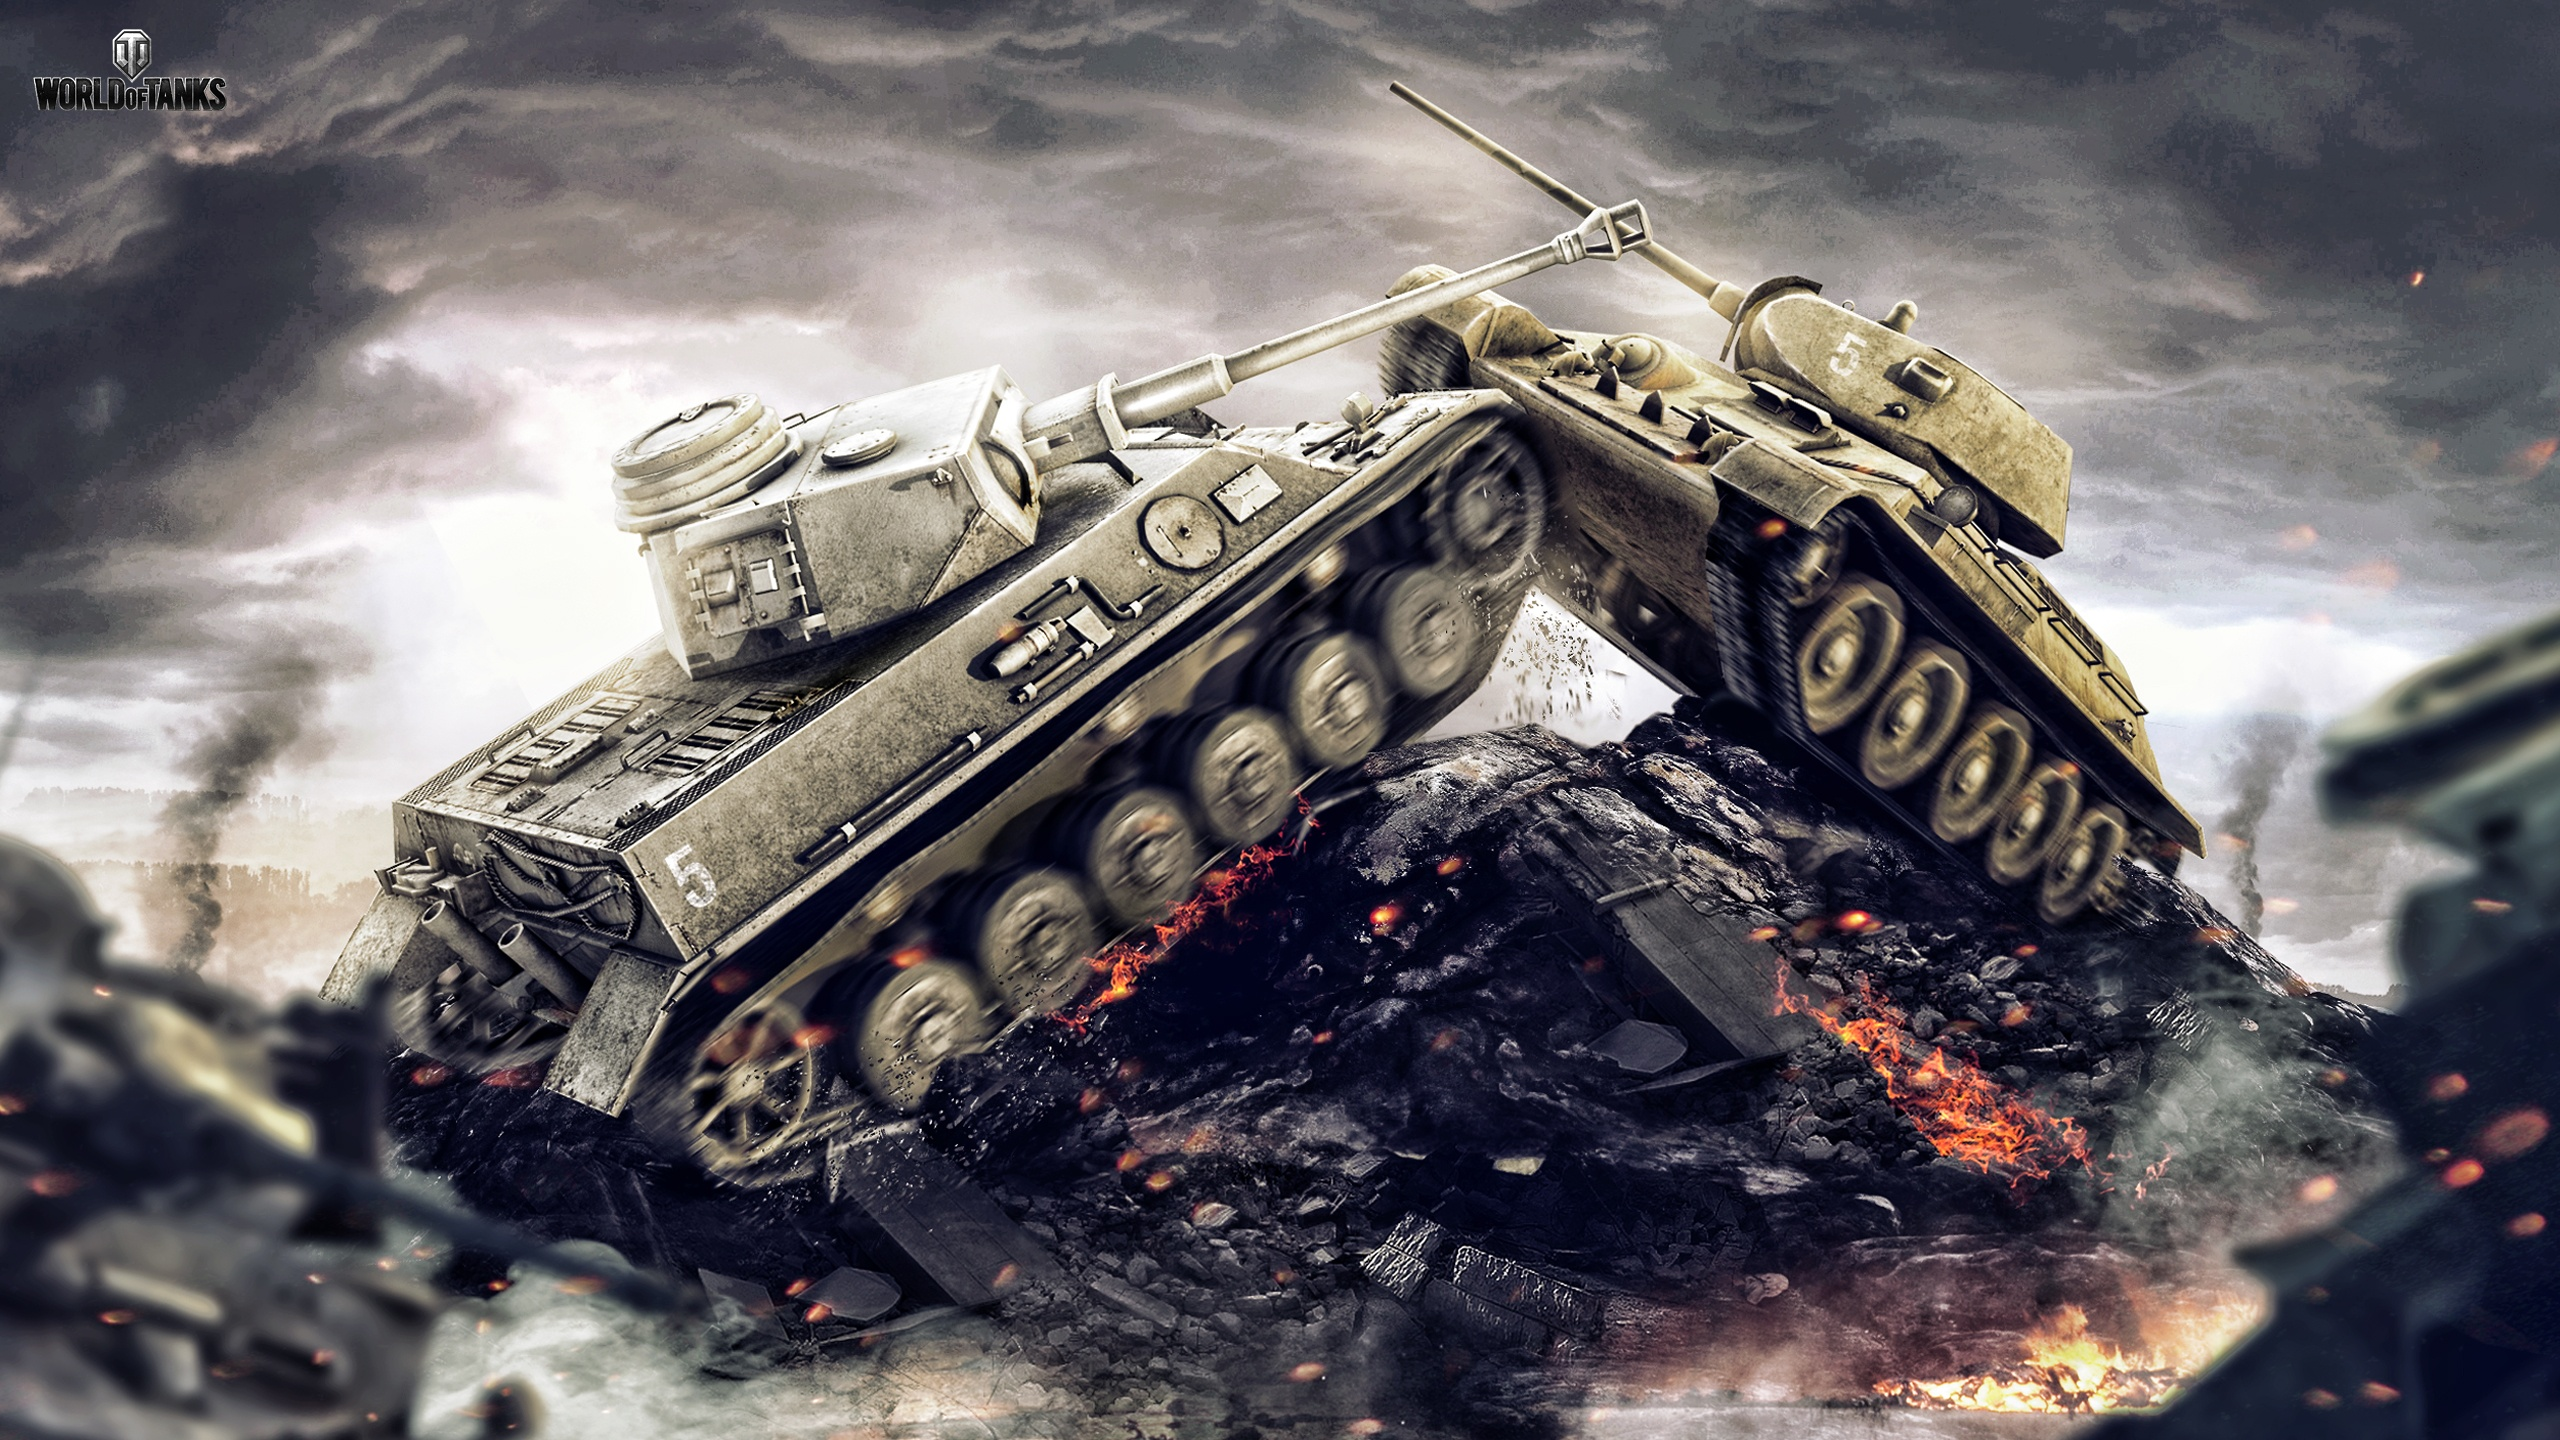 World Of Tanks Game High Five Wallpapers   2560x1440   1306546 2560x1440